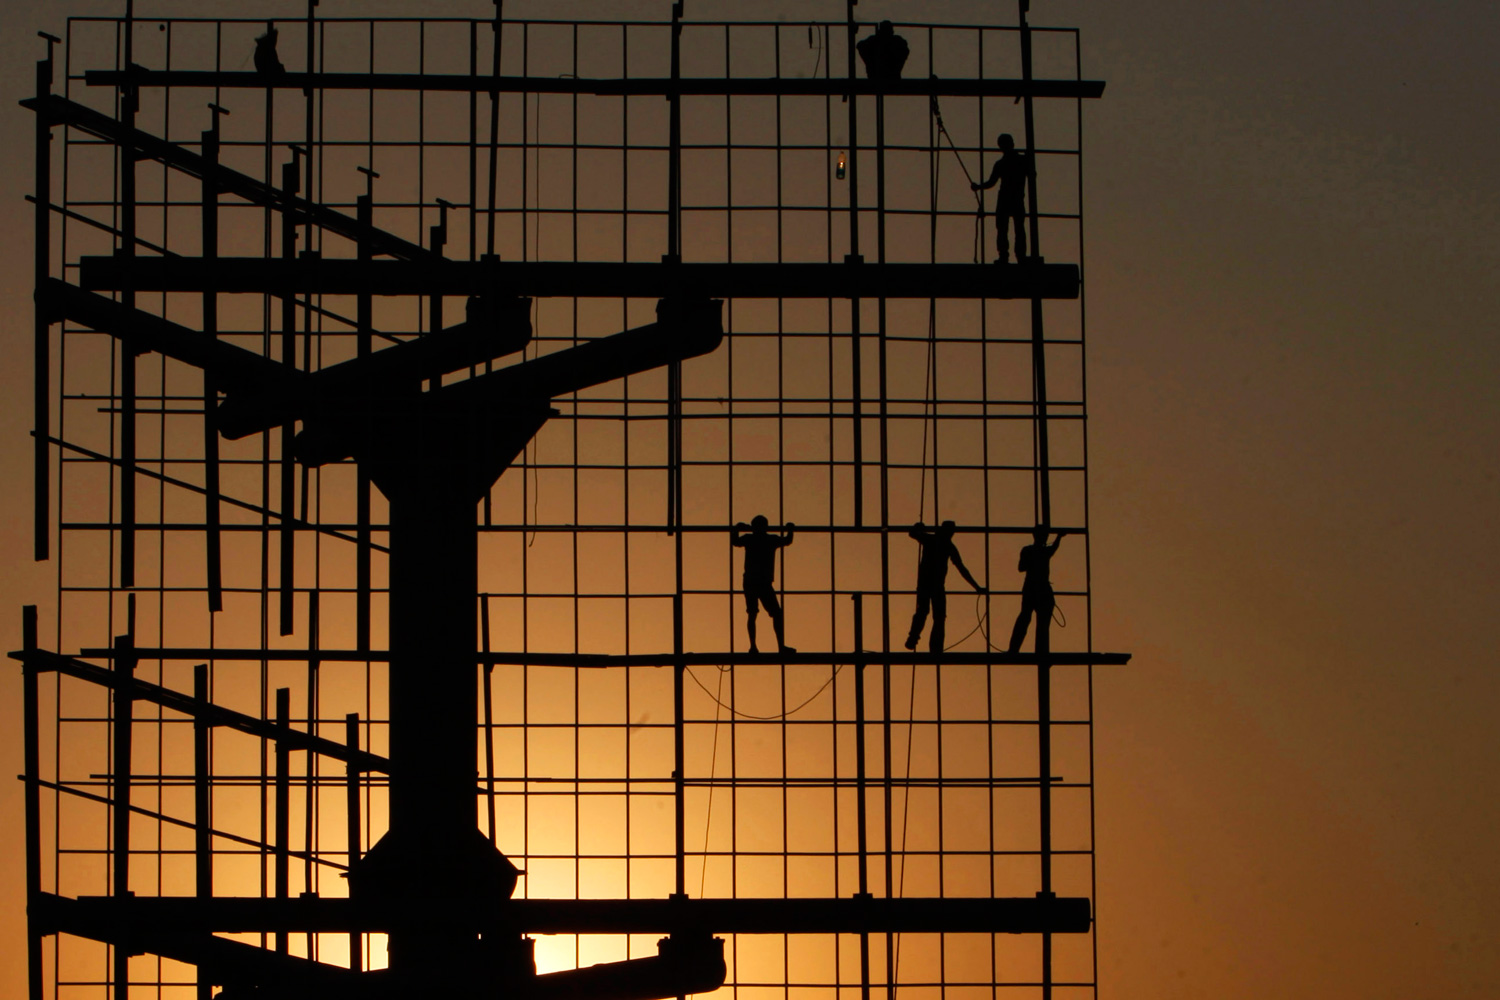 January 17, 2012. Indian workers prepare to erect a hoarding as the sun sets in Hyderabad, India.